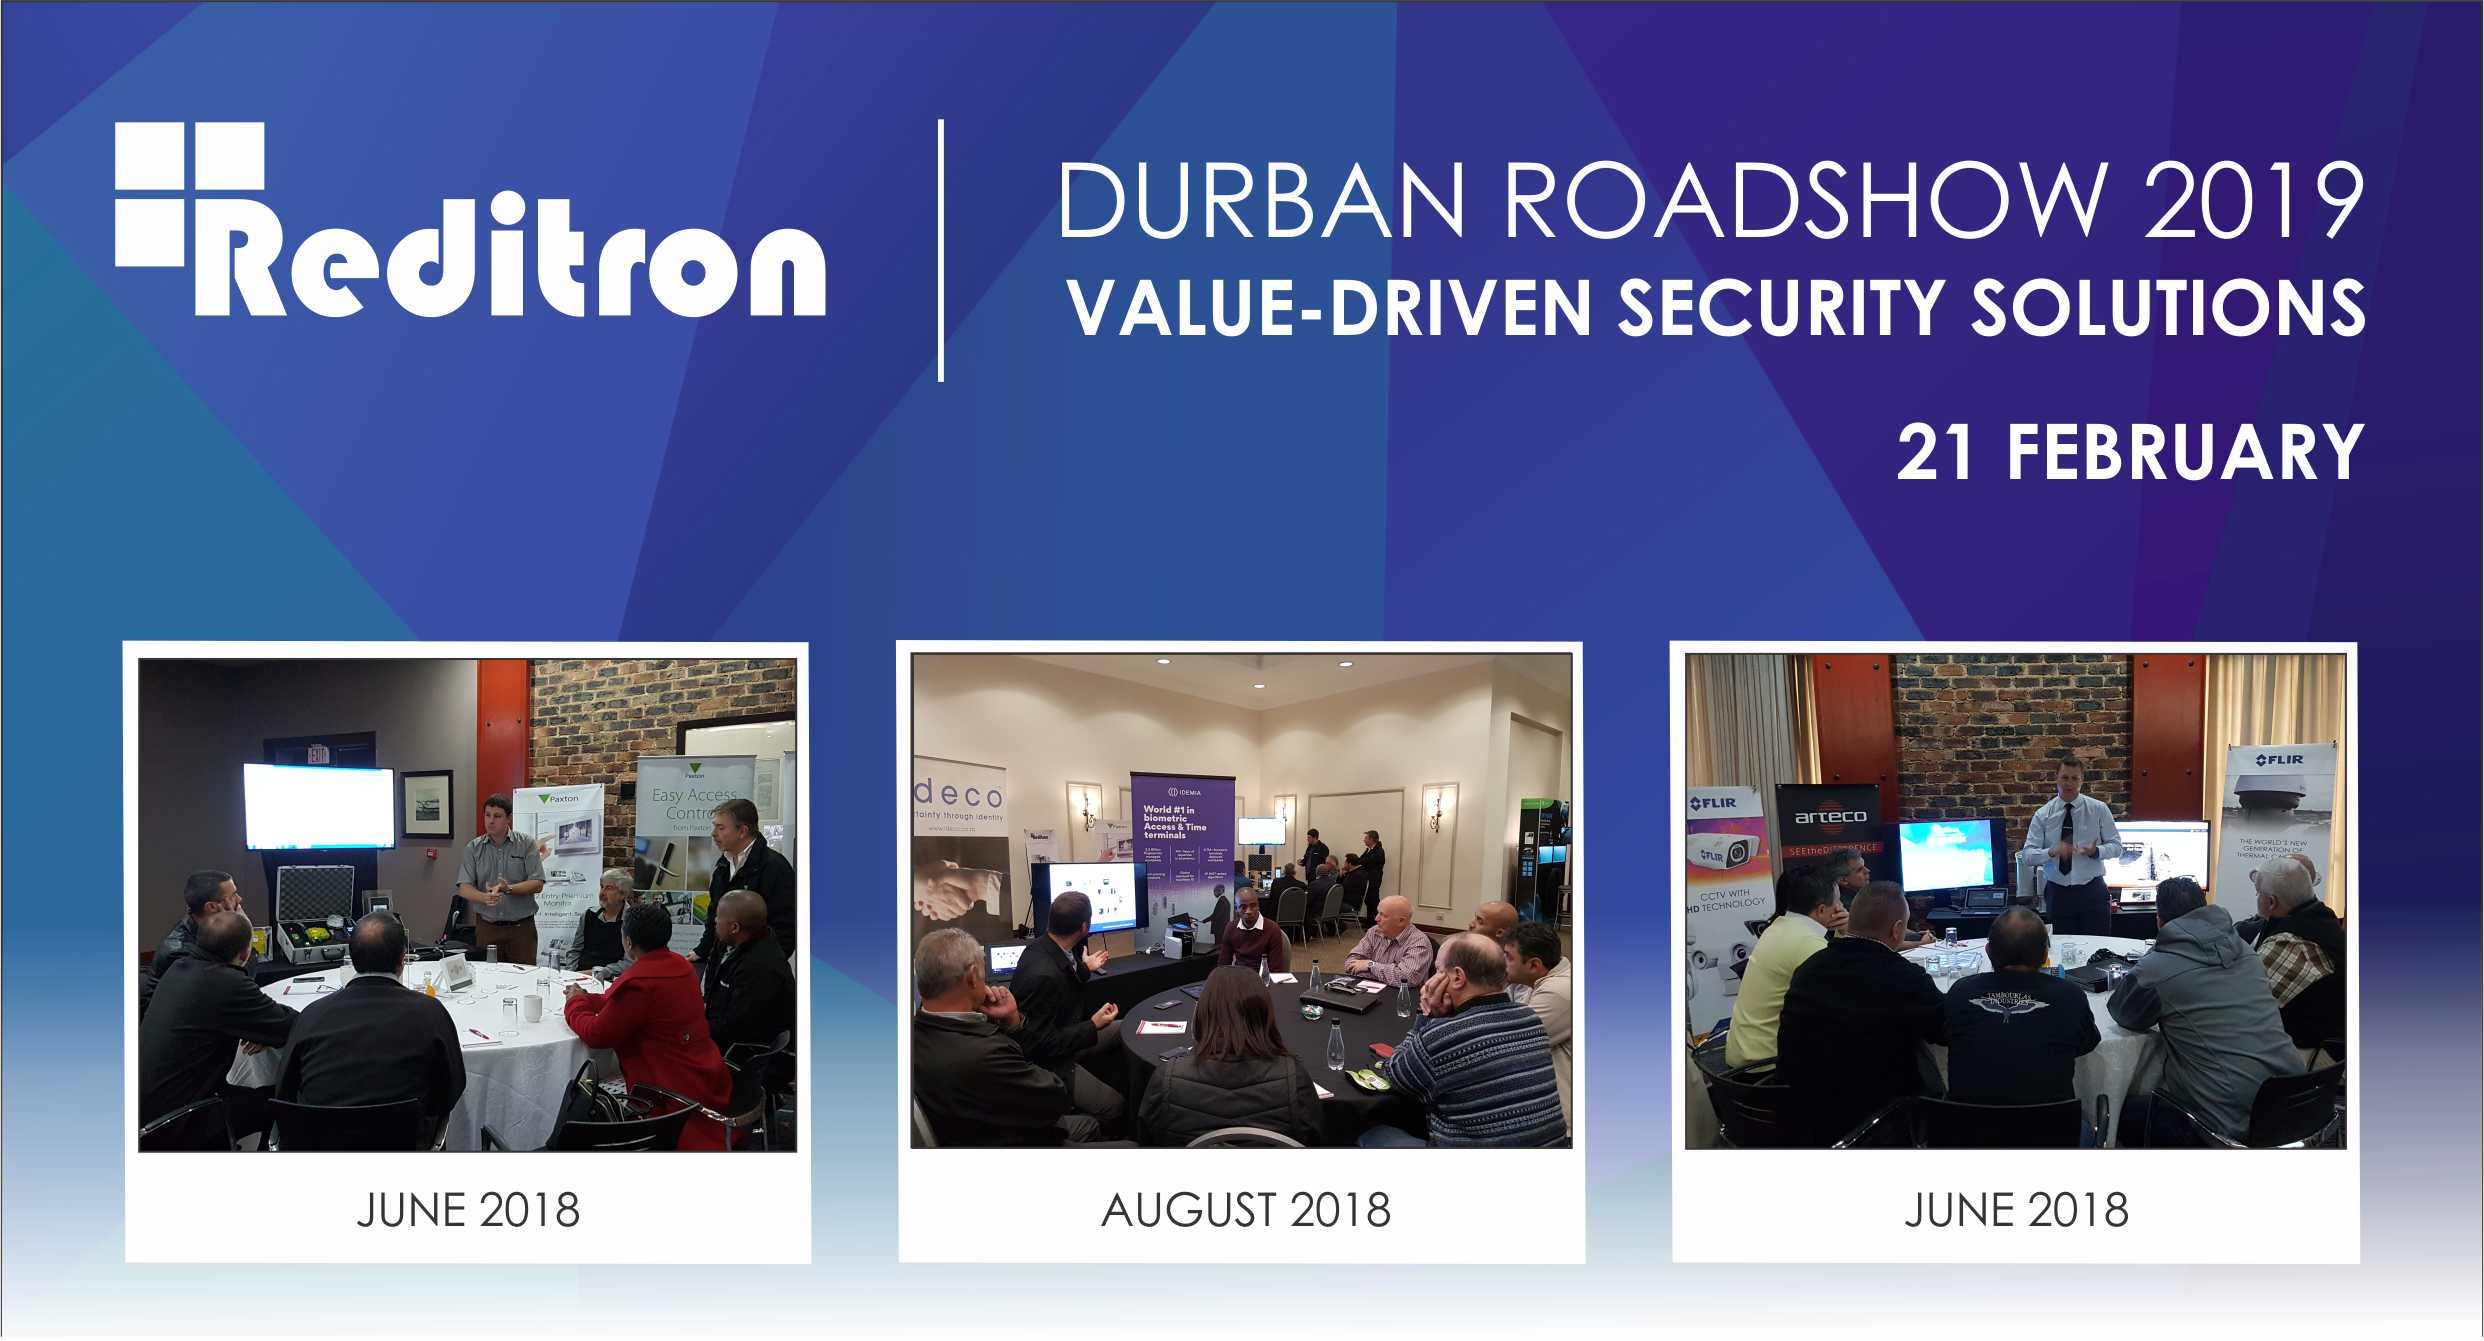 2019 August Roadshow Web Event Page Invite Durban v3.2